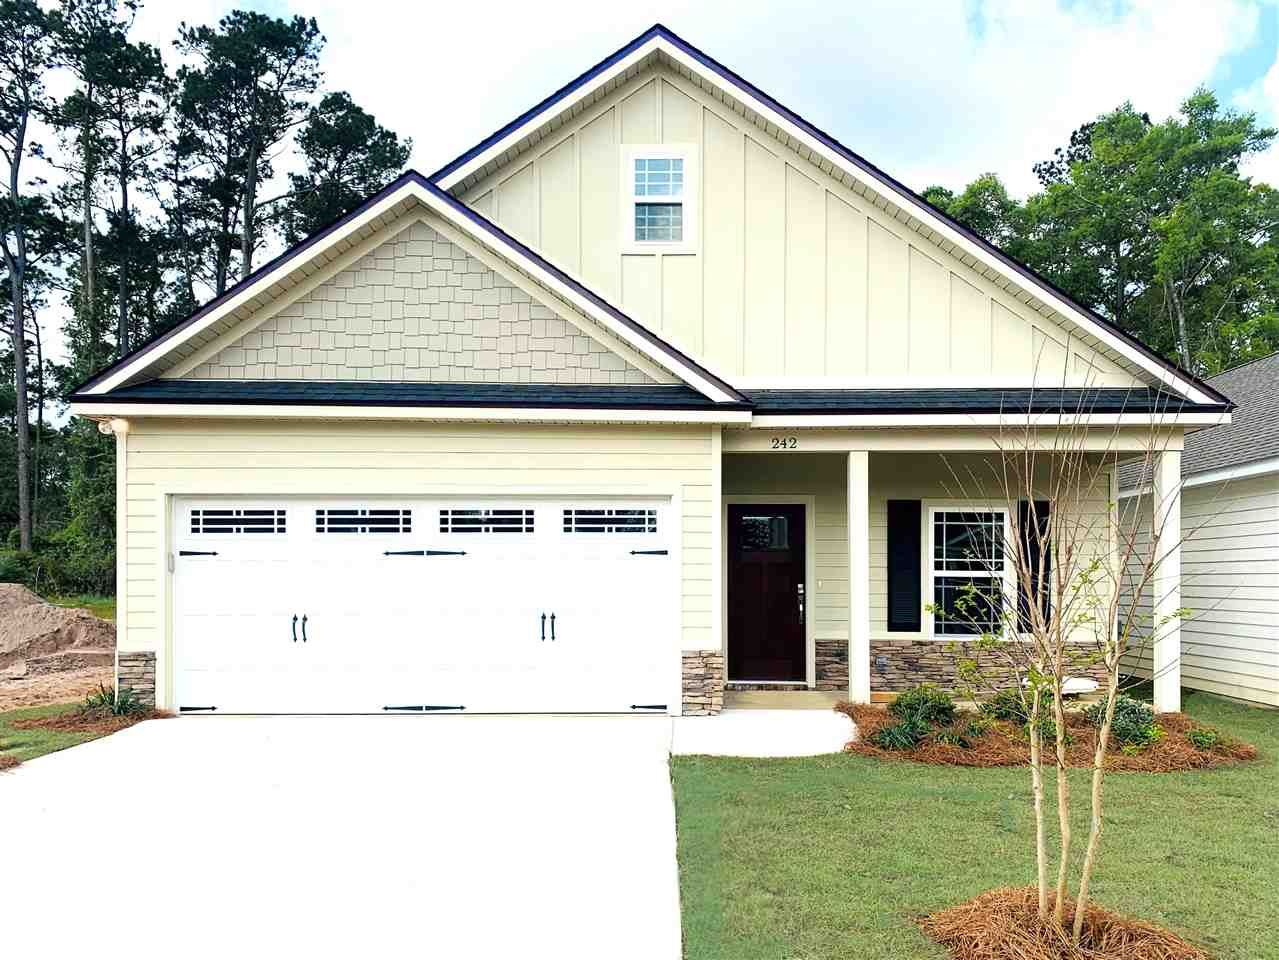 Photo of 5 Cottage Court, TALLAHASSEE, FL 32308 (MLS # 317214)